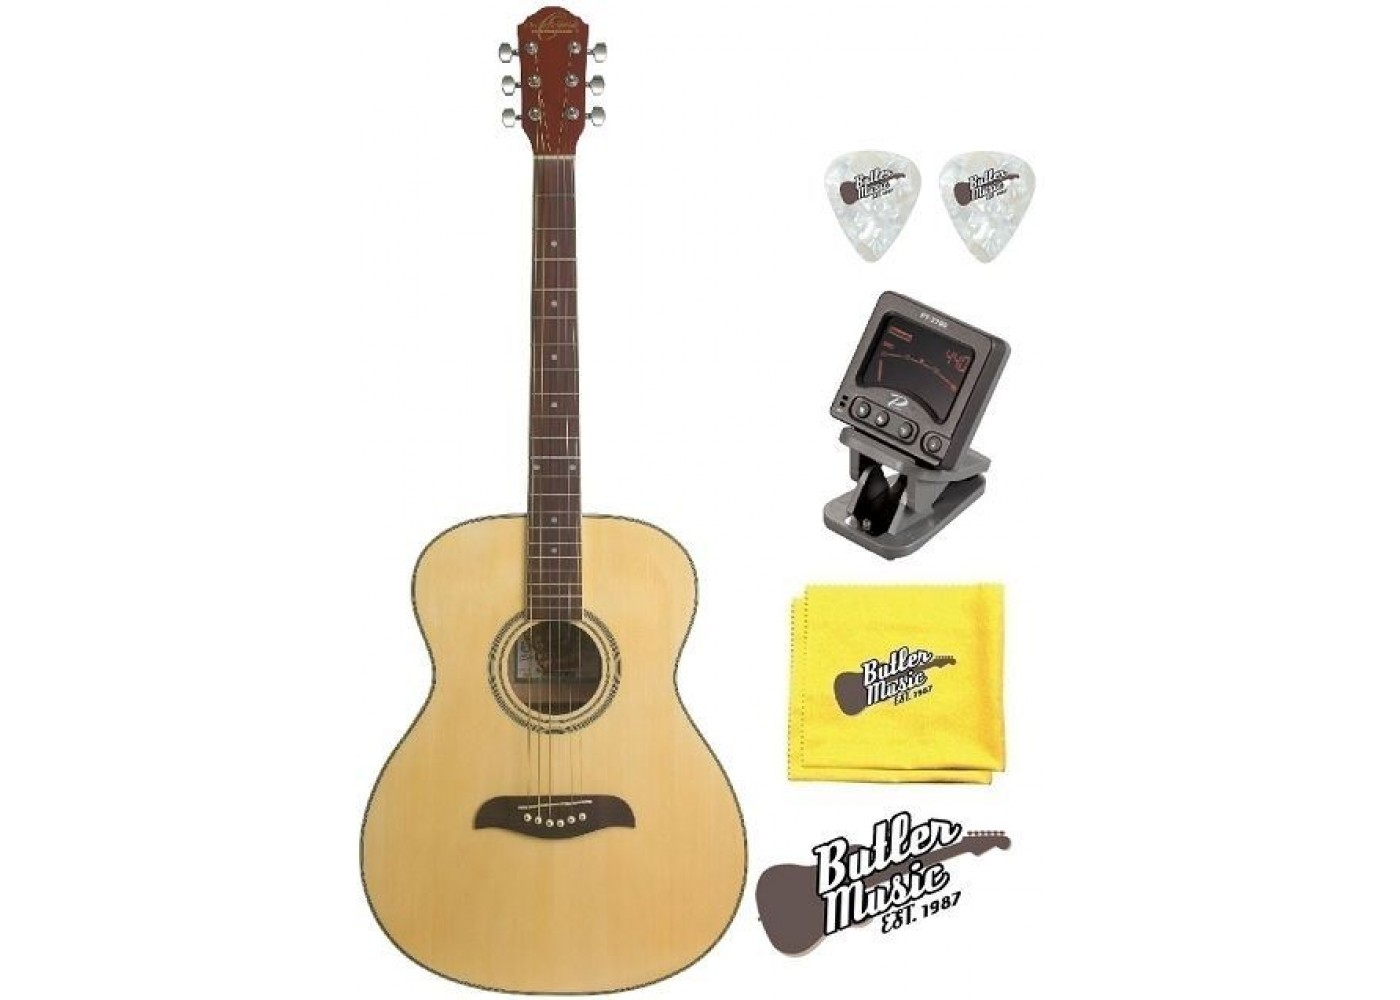 oscar schmidt oan natural auditorium size acoustic guitar tuner plus more bundle. Black Bedroom Furniture Sets. Home Design Ideas